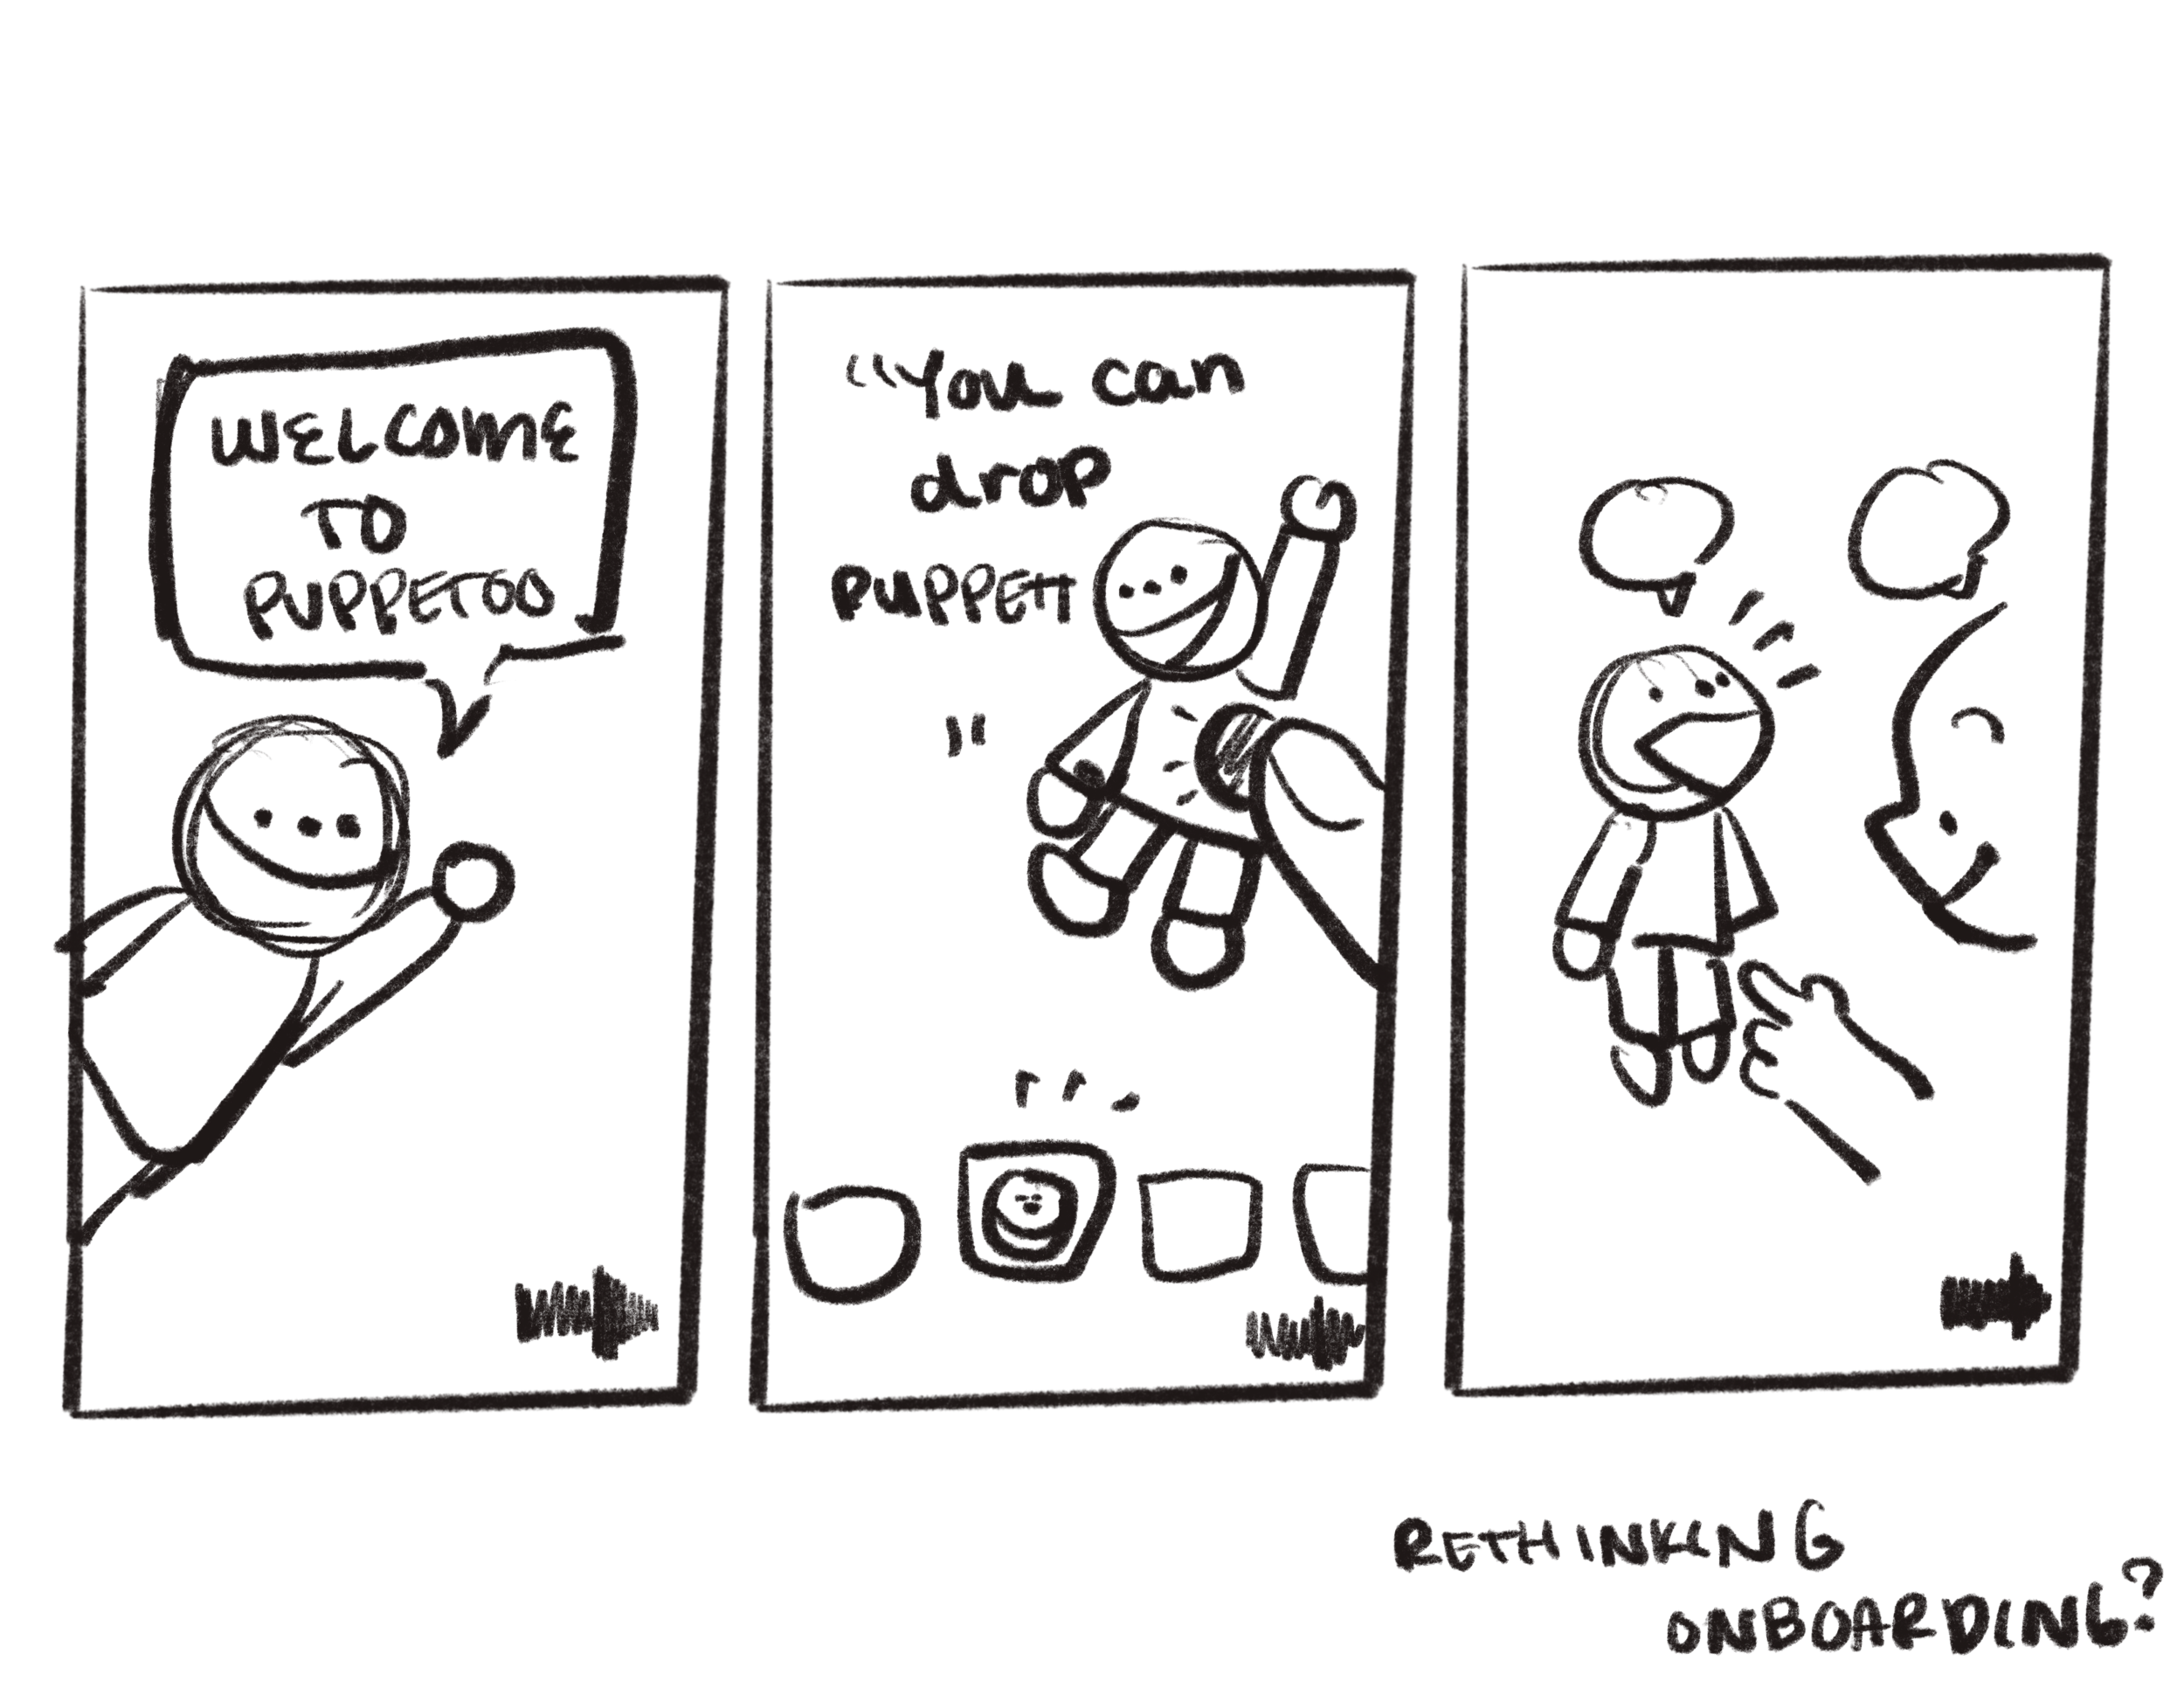 rethinking onboarding.png